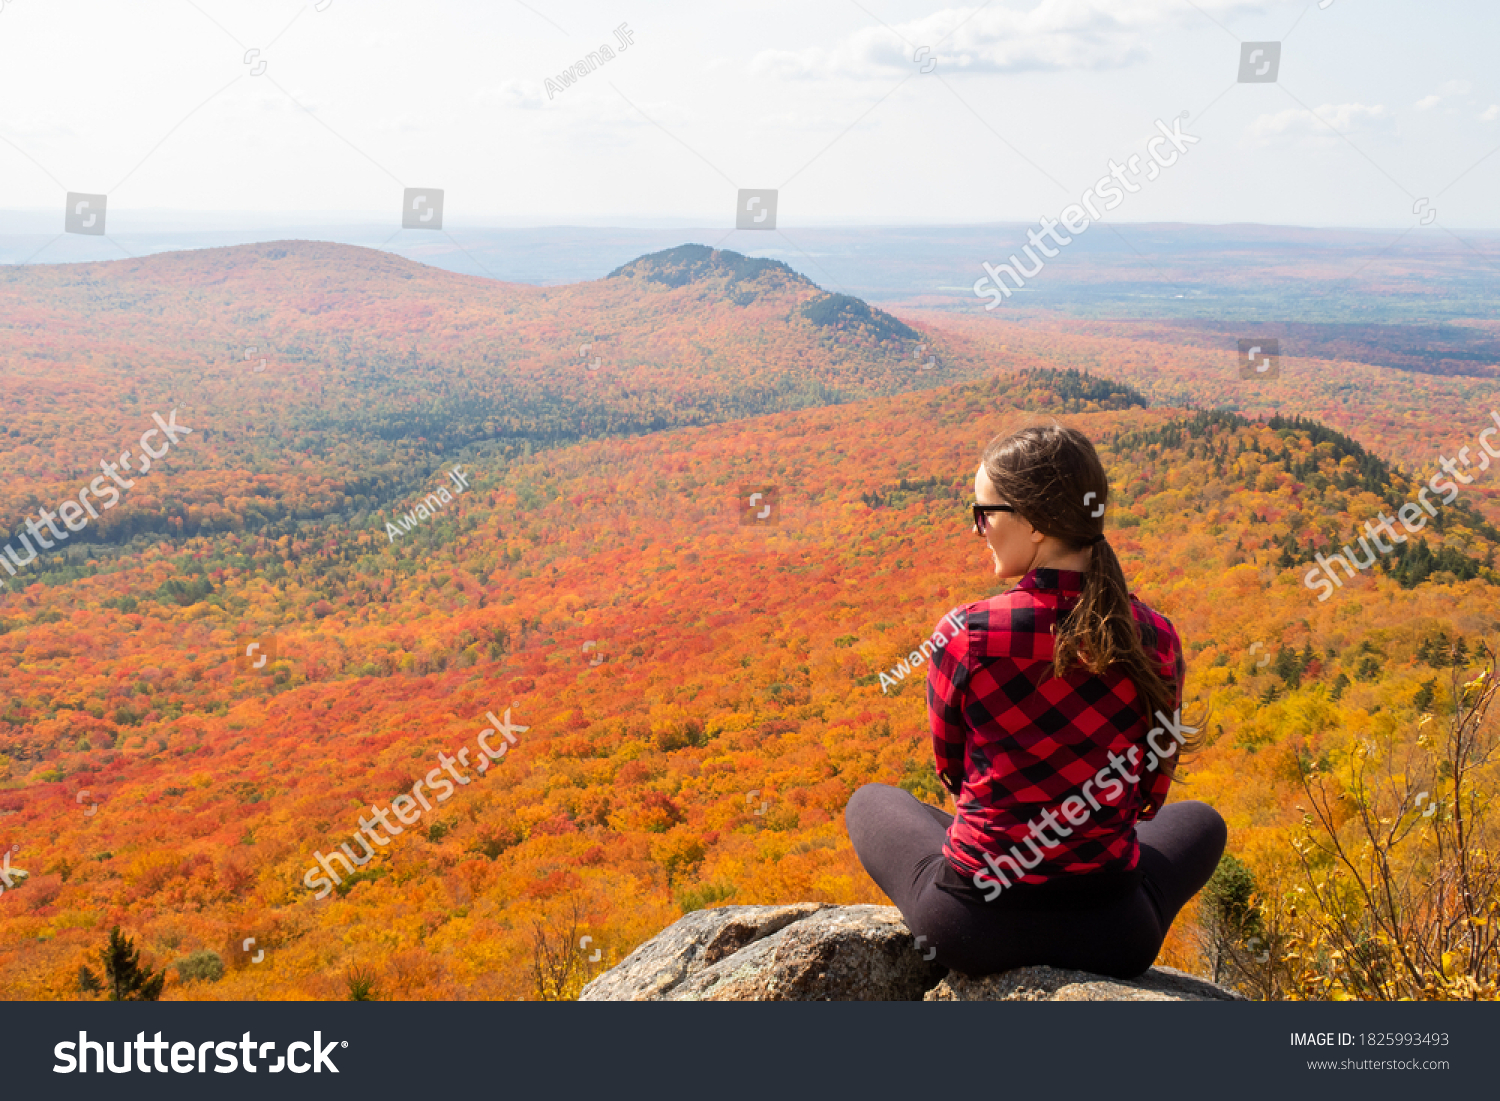 stock-photo-back-view-of-a-young-woman-s